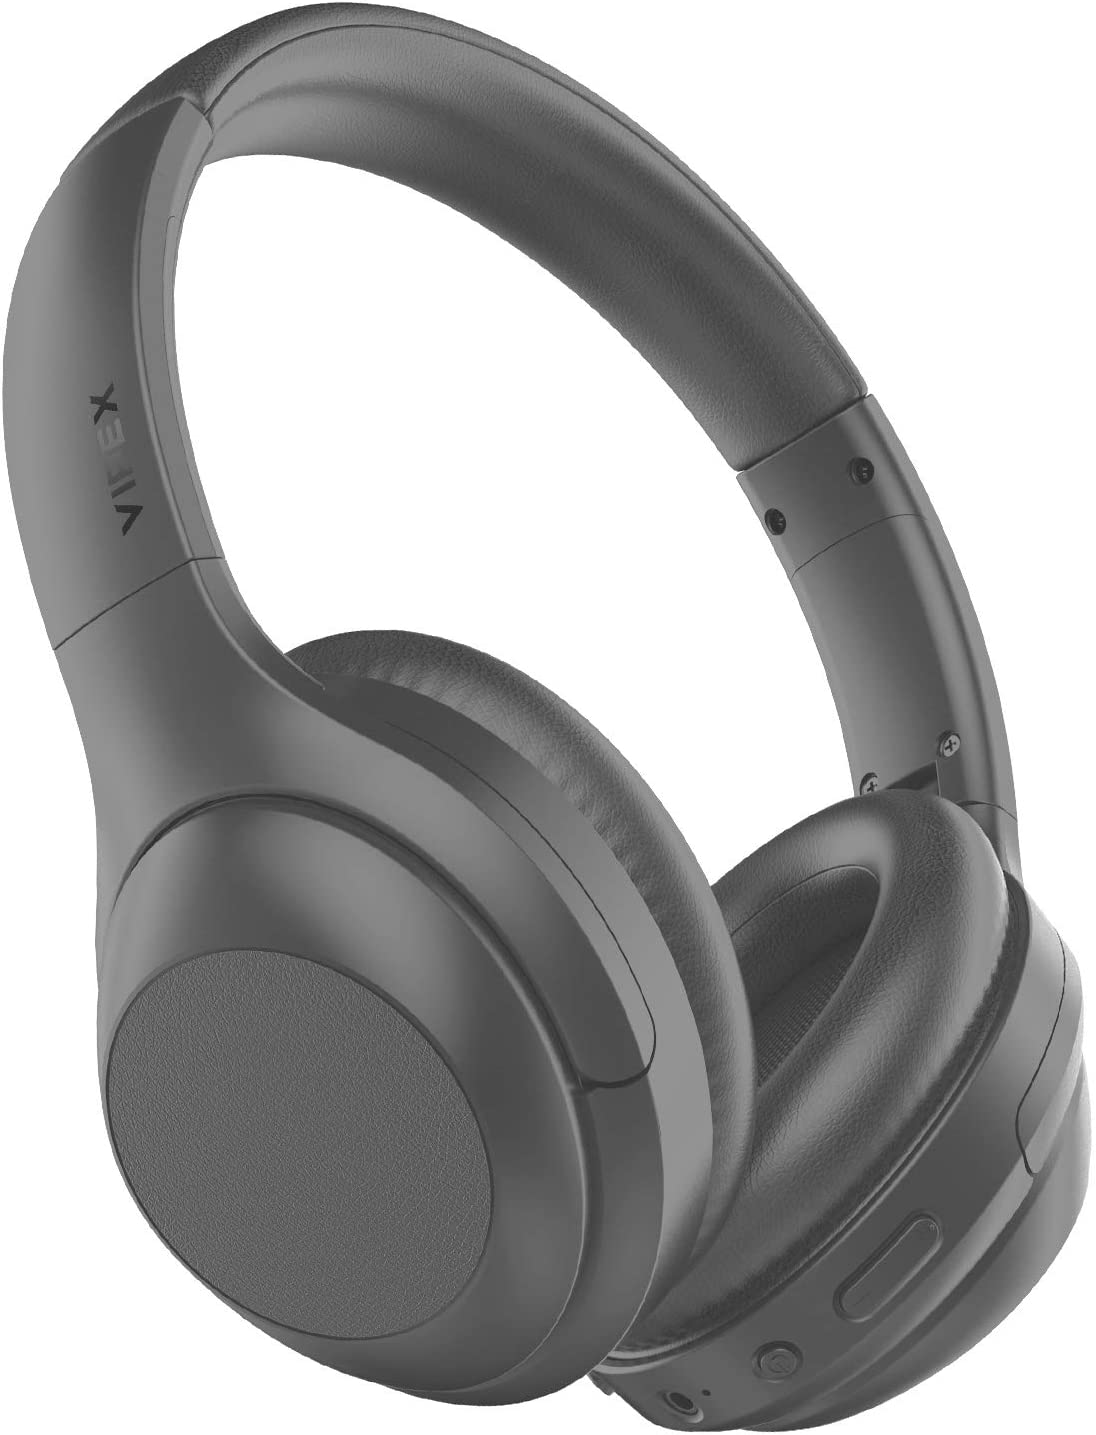 VIPEX Active Noise Cancelling Headphones, Bluetooth 5.0 Headphones Wireless Over Ear Headphones with Microphone, All Day Power with 30 Hours Playtime, Comfortable Protein Earpads (Grey)